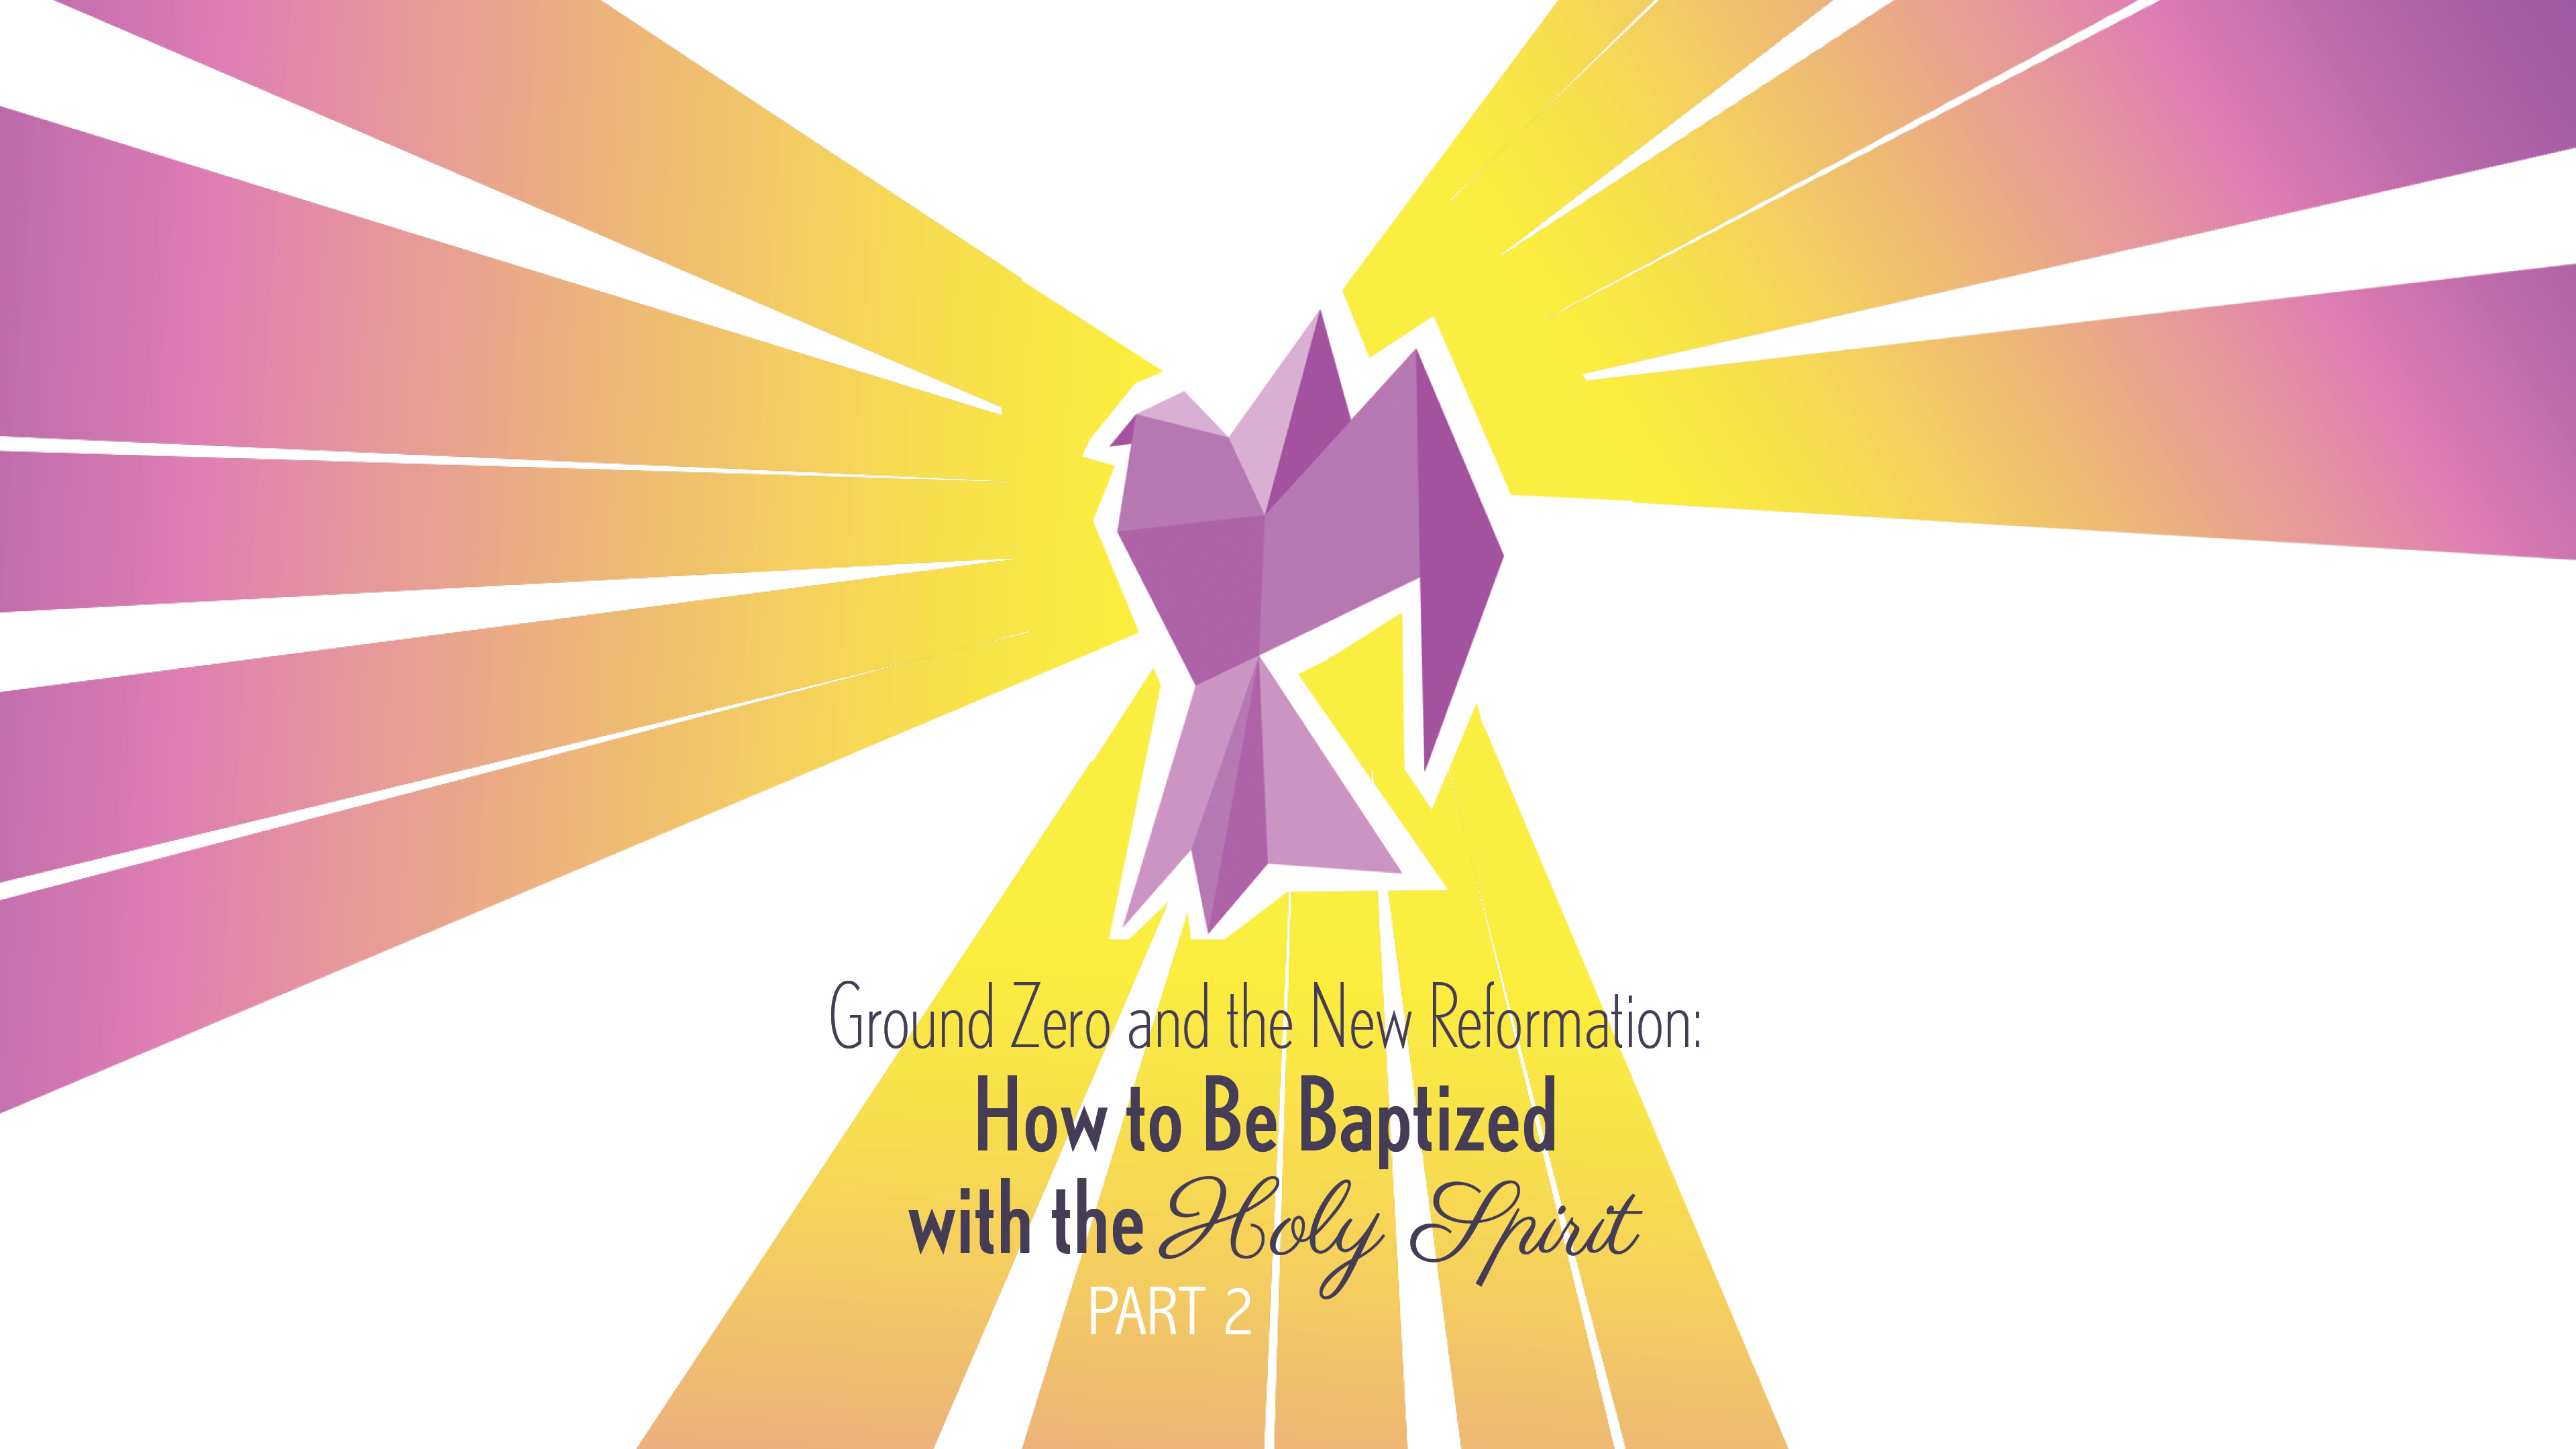 How to Be Baptized with the Holy Spirit - Part 2 | Pioneer Memorial